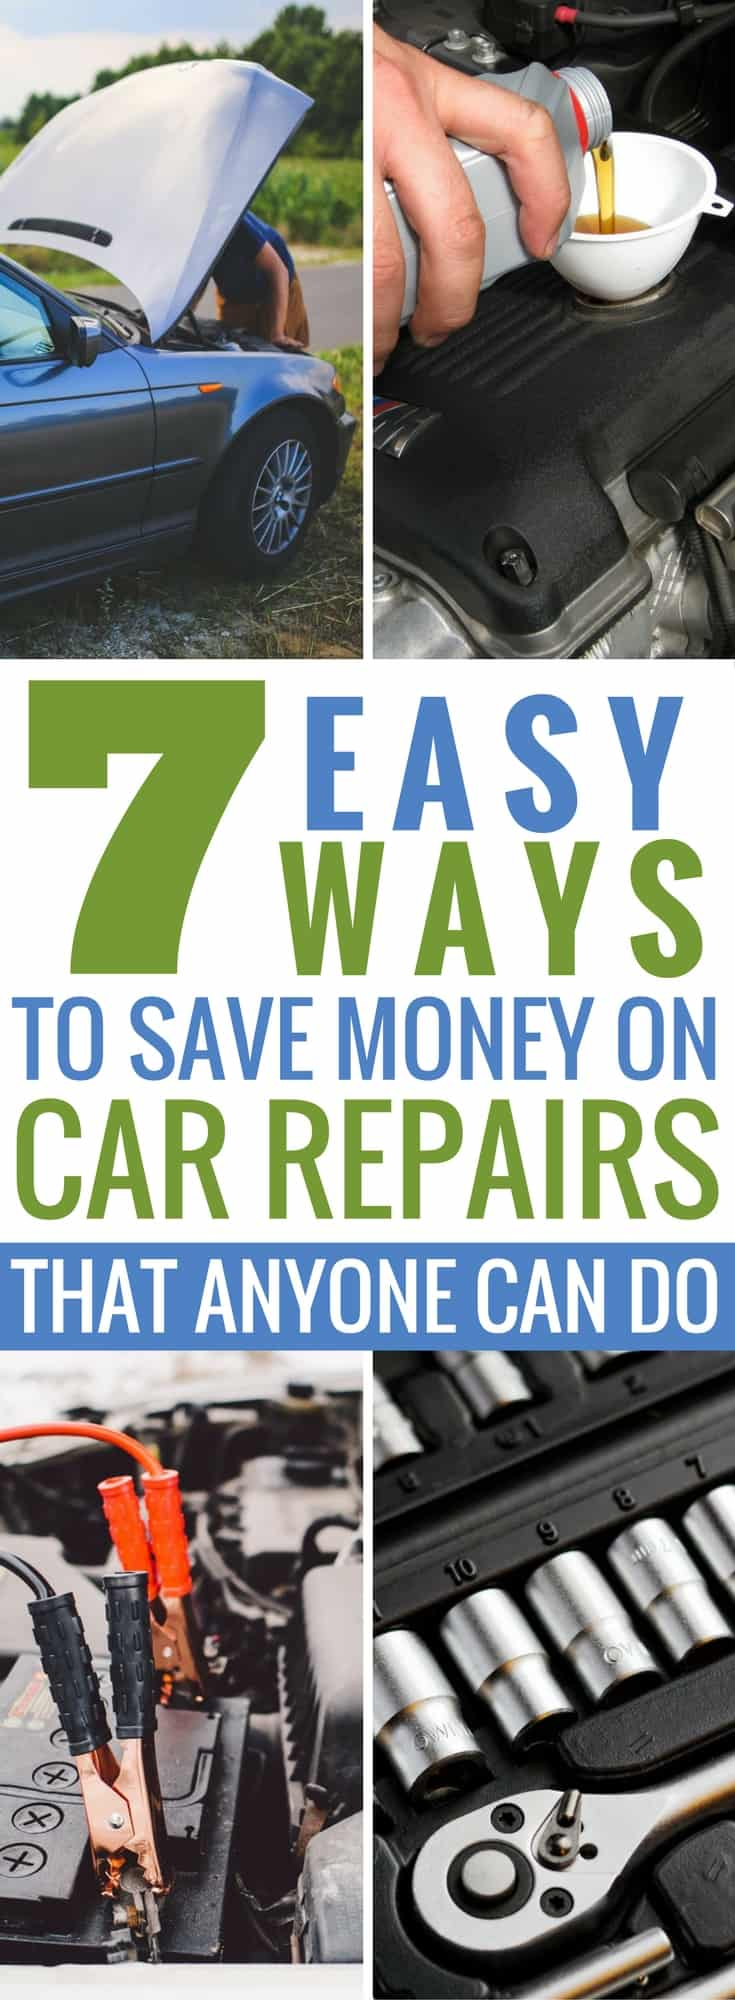 This list has some incredible tips on saving money at the auto repair shop. They are so easy to follow anyone can do them. #7 has saved us thousands! #CarRepairs #AutoShop #CarMaintenance #CarFixes #AutoRepairs #OilChanges